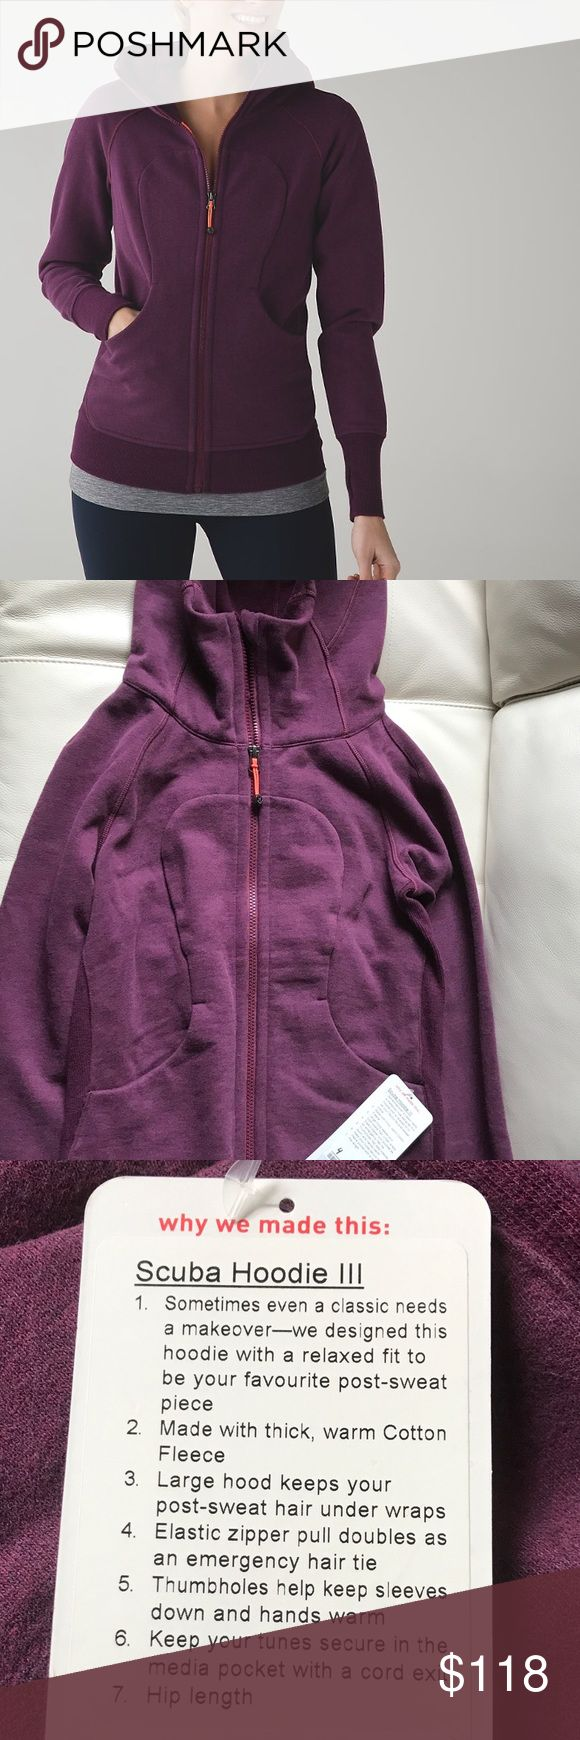 NWT HEATHERED RED GRAPE LULULEMON SCUBA HOODIE III Brand: Lululemon Athletica Scuba hoodie III        Condition: New with tag || Size 4 || Heathered red grape. Stock photo shows accurate color!   🚩NO TRADES  🚩NO LOWBALL OFFERS  🚩NO RUDE COMMENTS  🚩NO MODELING  ☀️Please don't discuss prices in the comment box. Make a reasonable offer and I'll either counter, accept or decline.   I will try to respond to all inquiries in a timely manner. Please check out the rest of my closet, I have…